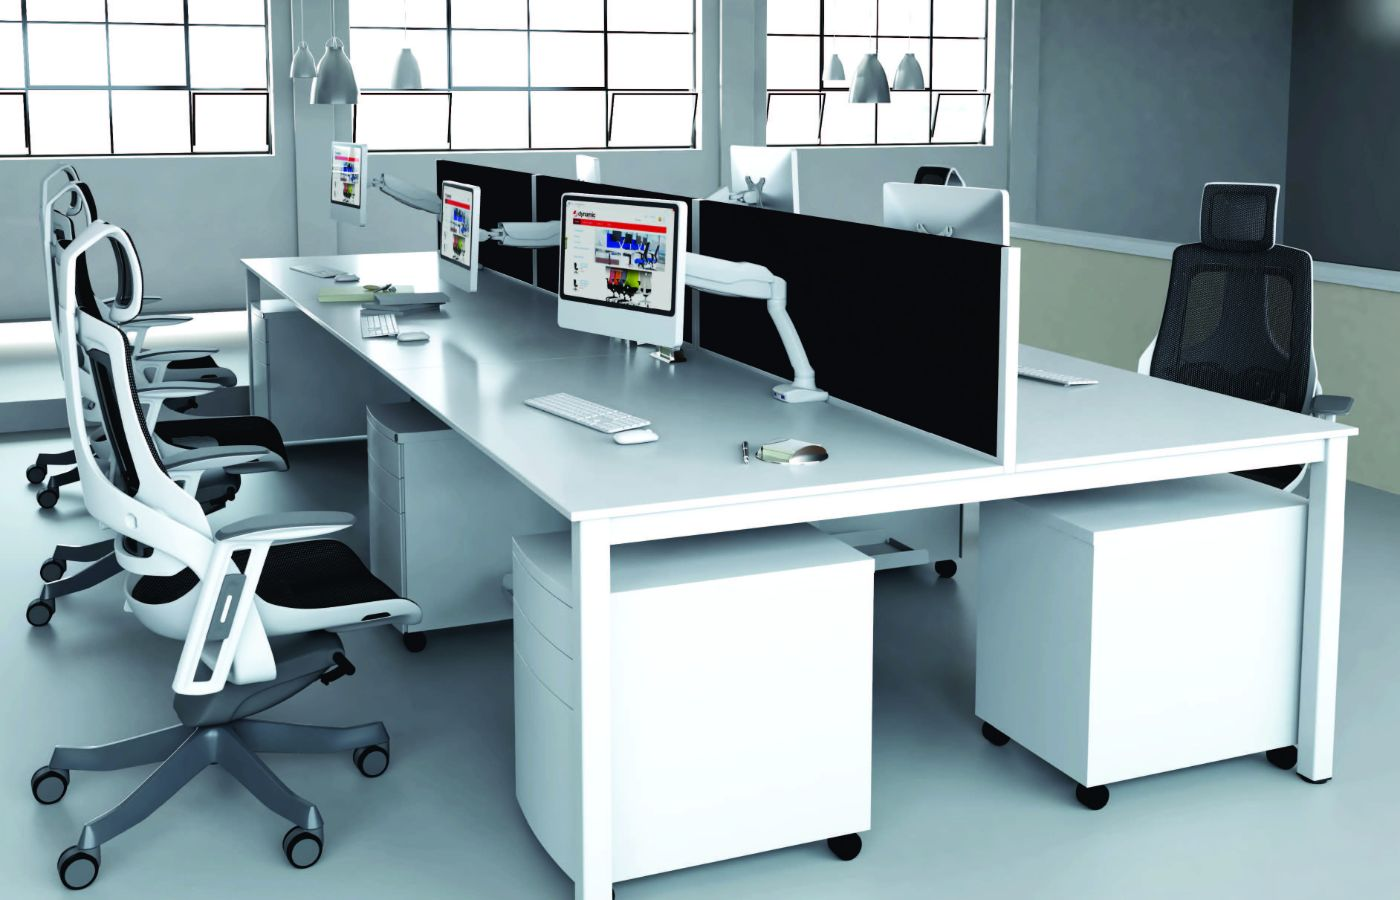 white desk for office and breakout